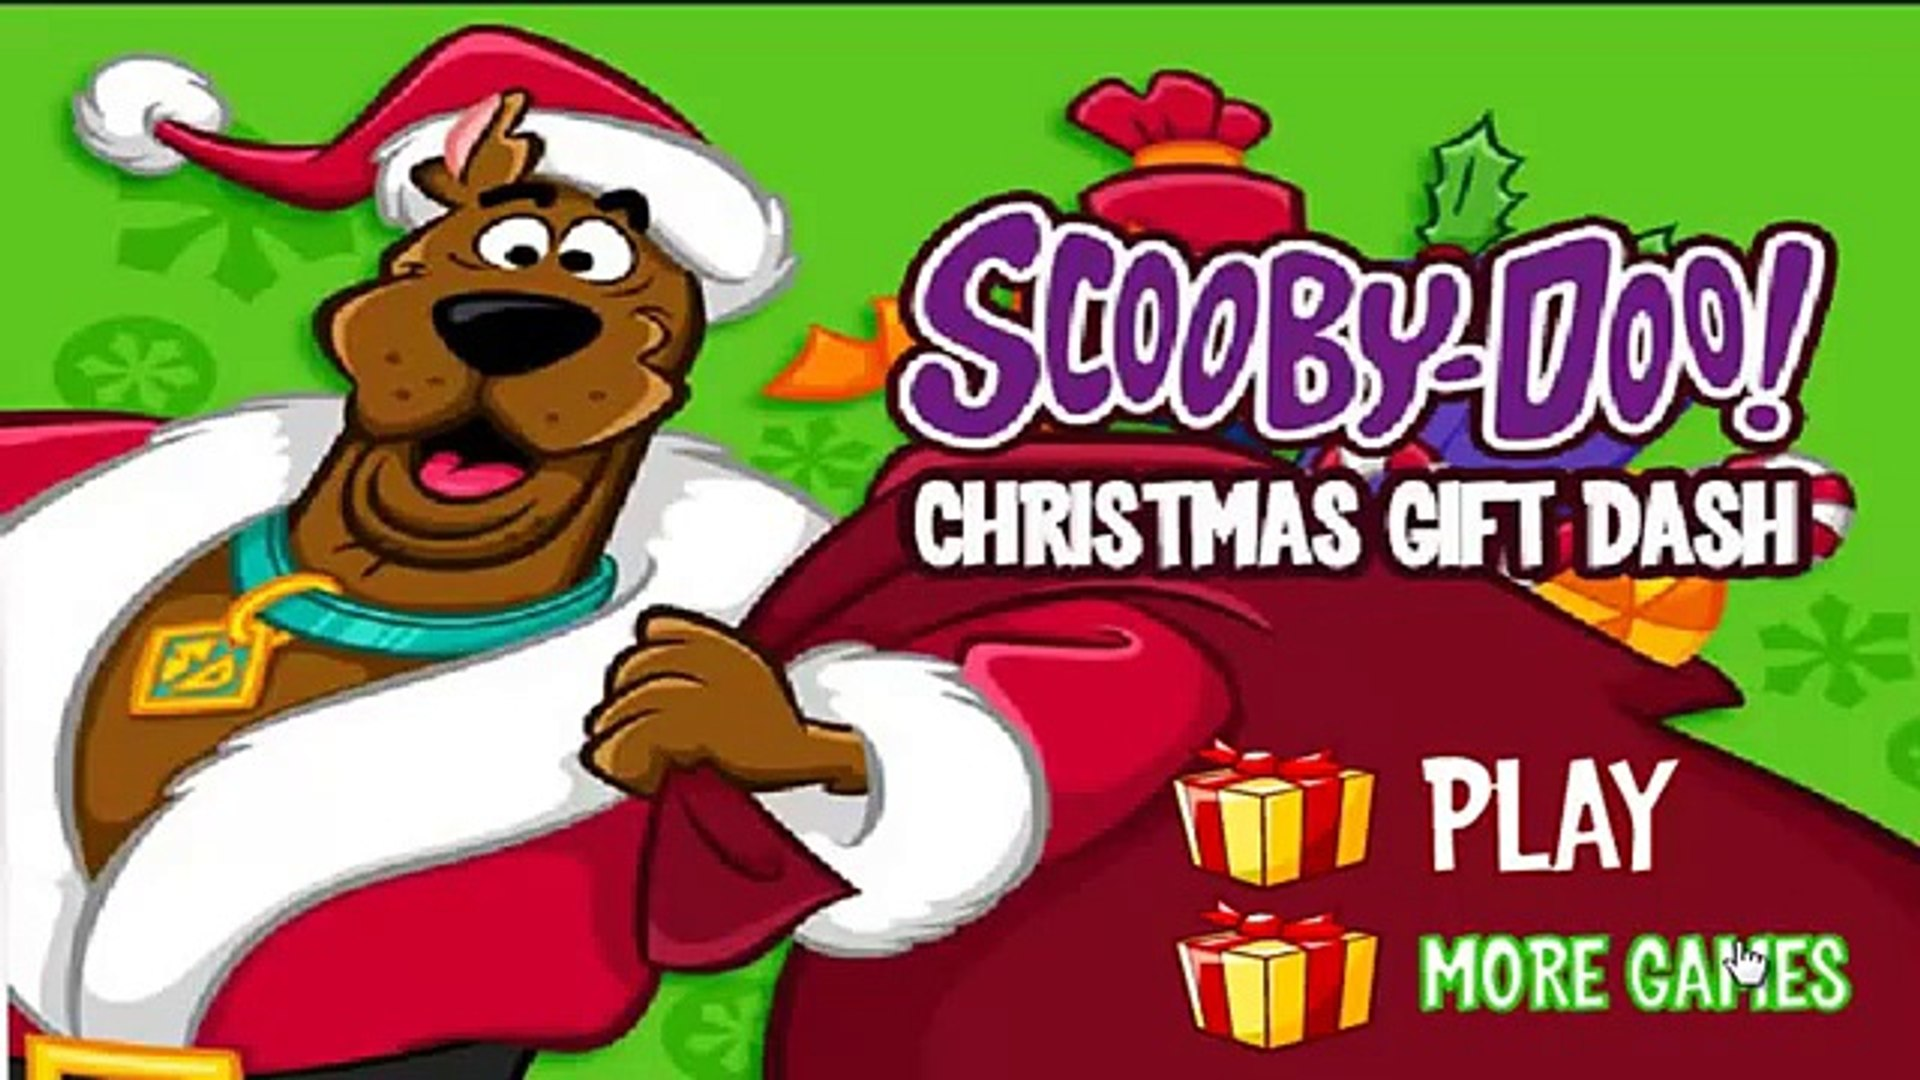 Scooby Doo Christmas.Scooby Doo Christmas Gift Dash Scooby Doo Games To Play